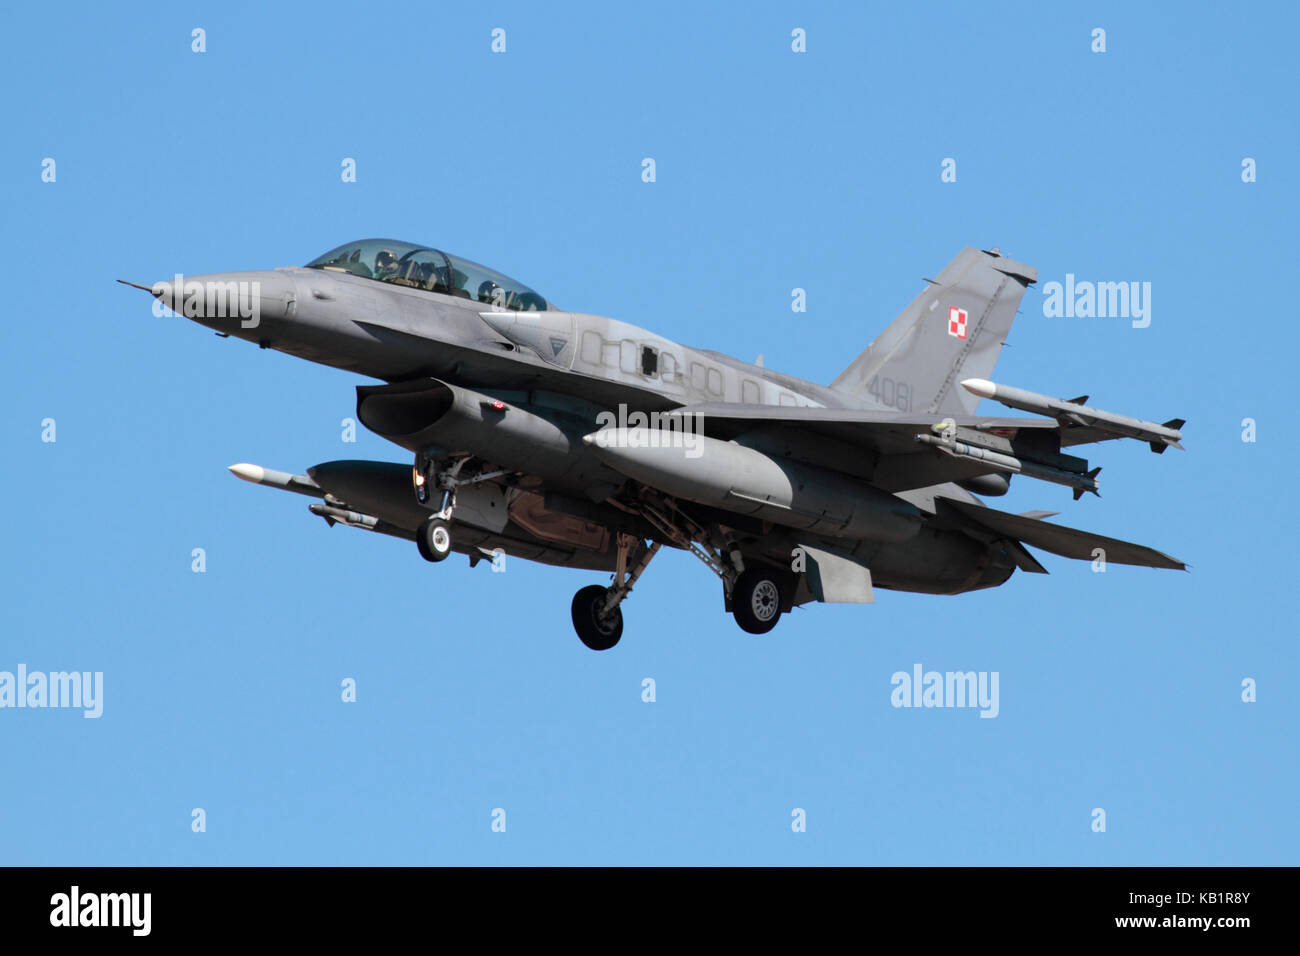 Modern military aviation. Polish Air Force F-16D combat jet aircraft on approach, equipped with conformal fuel tanks - Stock Image